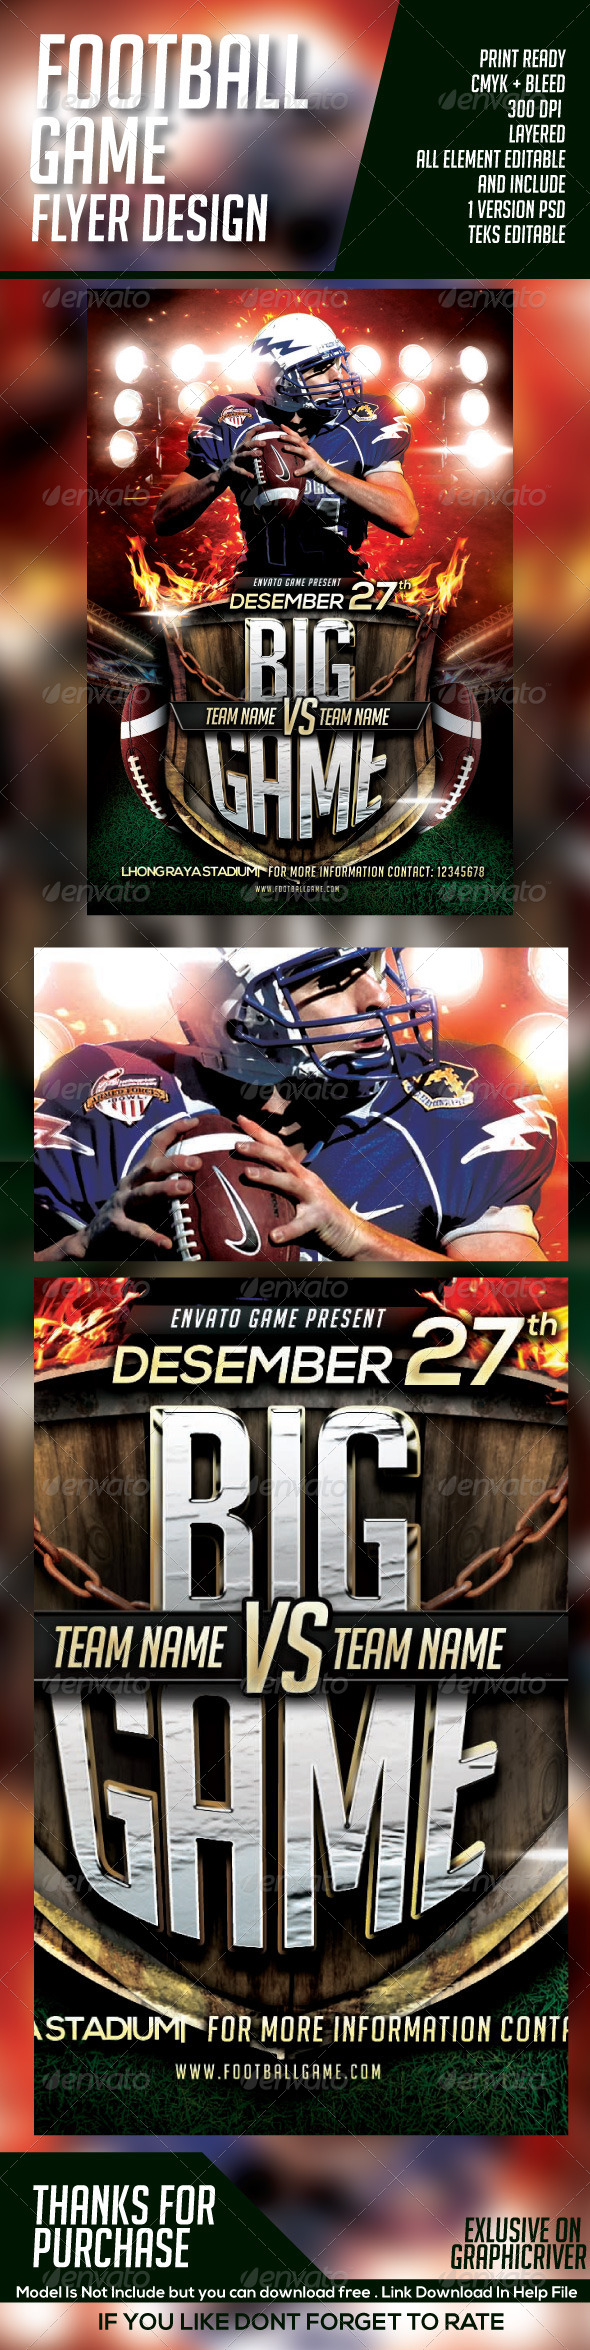 BIG GAME FOOTBALL FLYER - Sports Events